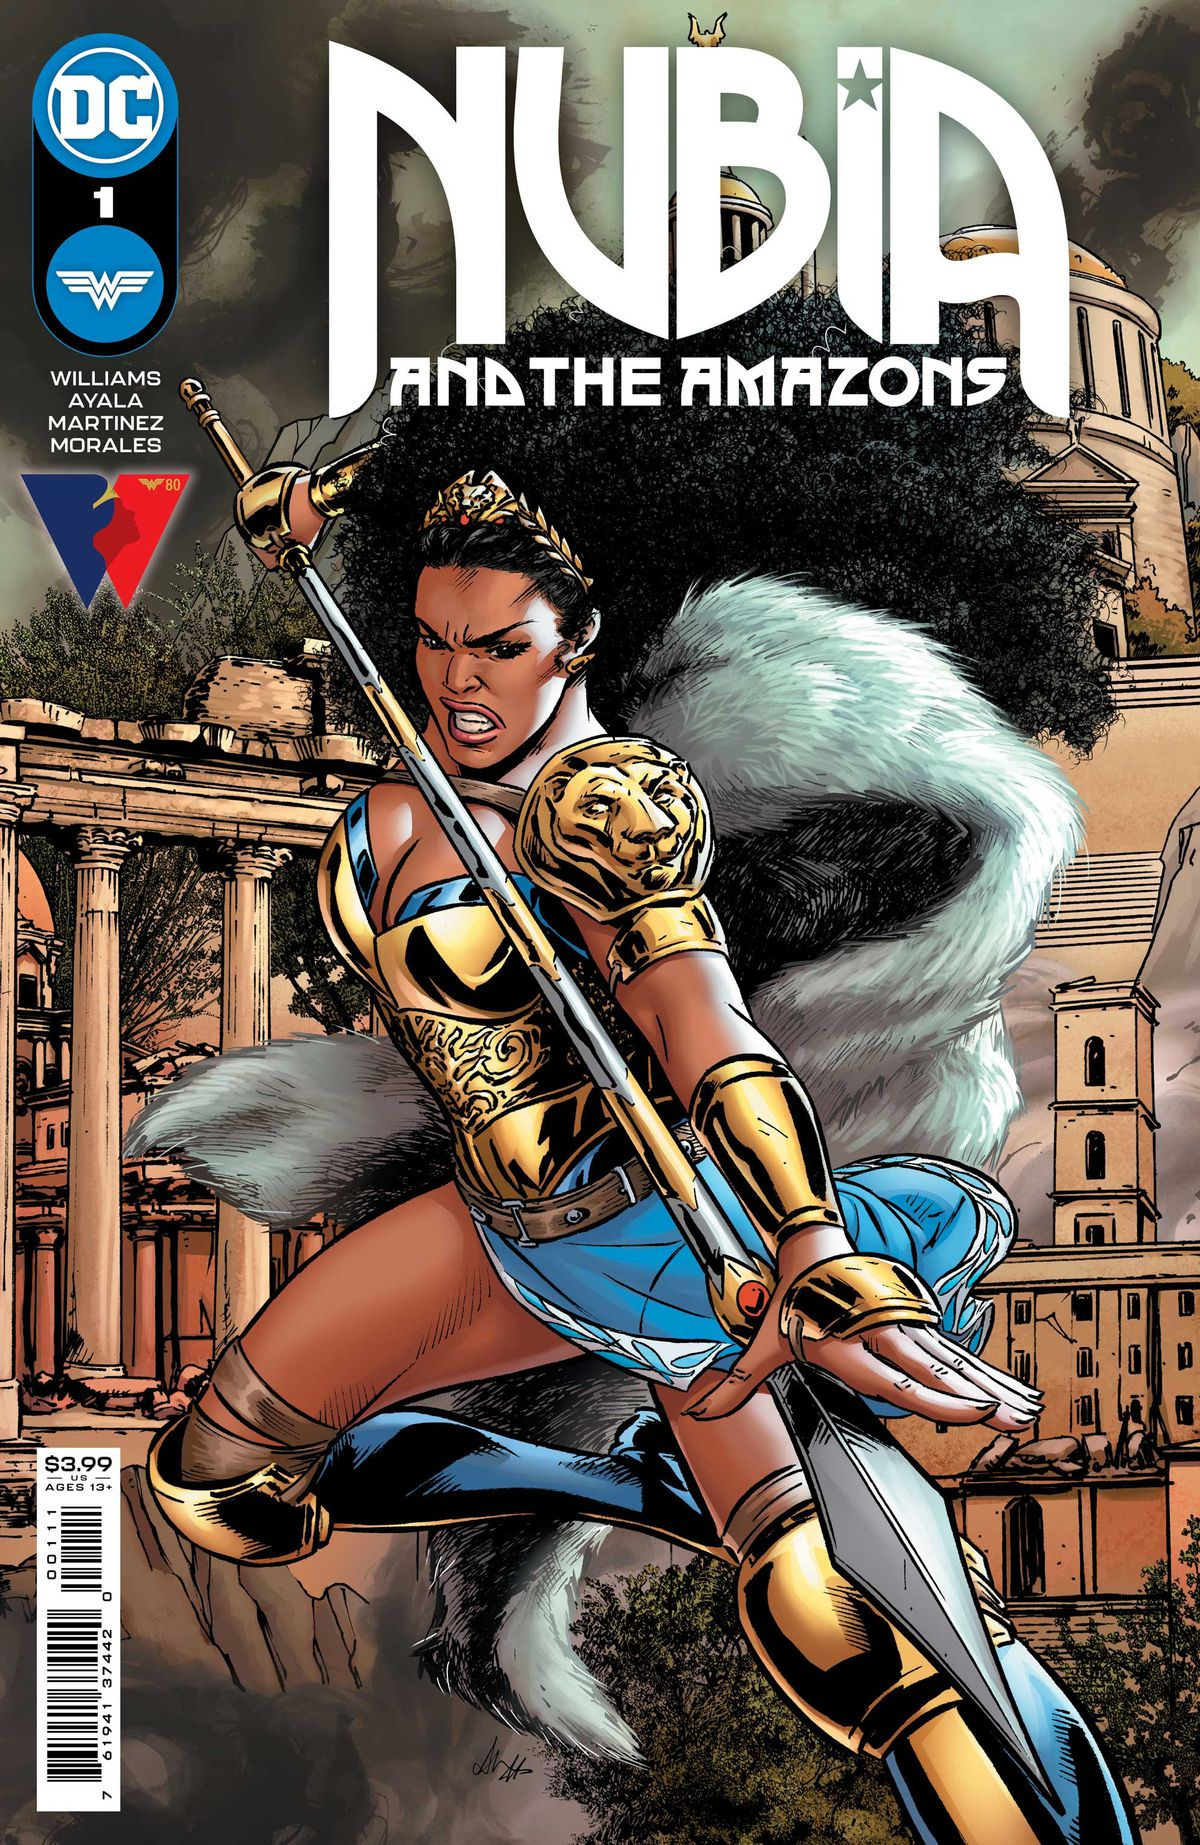 Nubia, Queen of the Amazons, wields a spear on the cover of Nubia and the Amazons # 1 (2021).